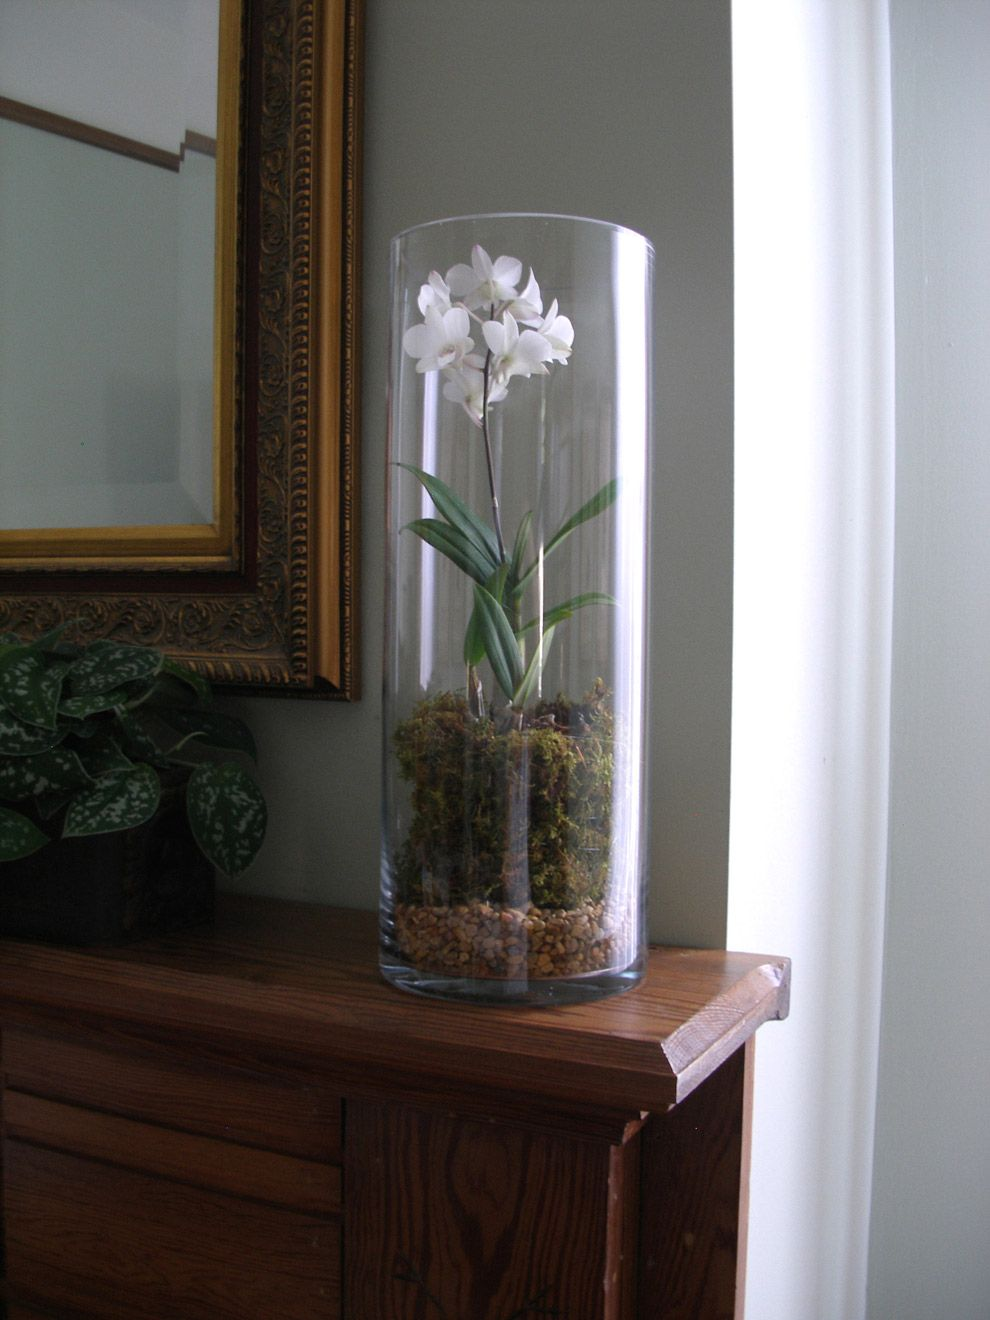 Using round cylinder clear glass extra tall vase for orchid using round cylinder clear glass extra tall vase for orchid reviewsmspy